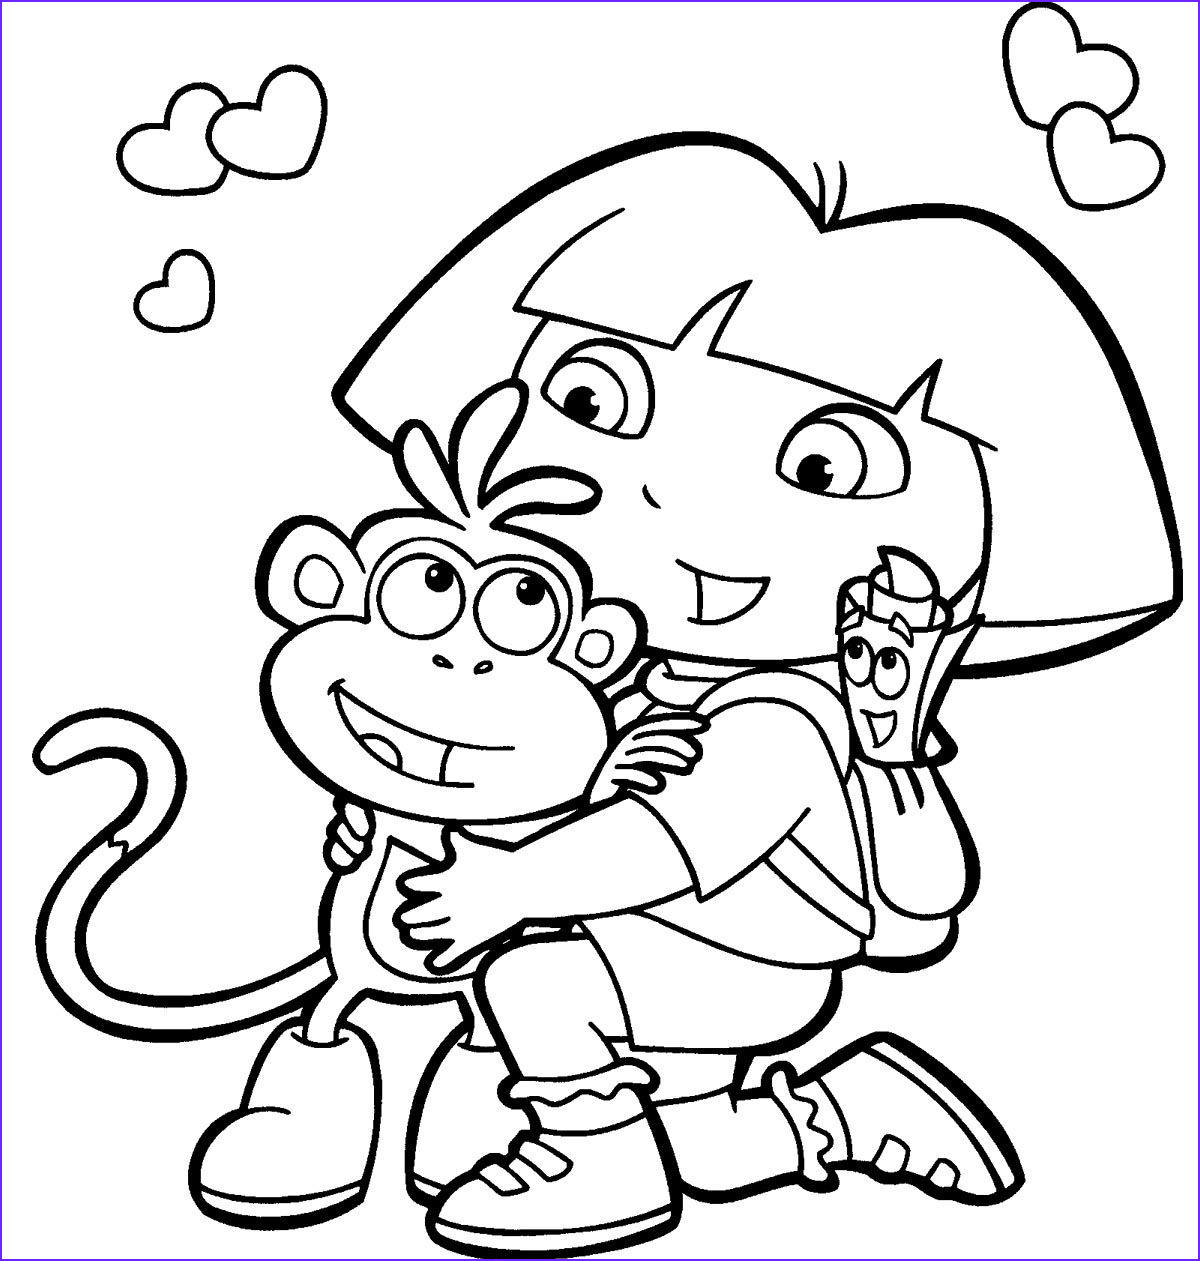 Dora Coloring Luxury Gallery Dora Coloring Pages Printable Dora Coloring Pages Free